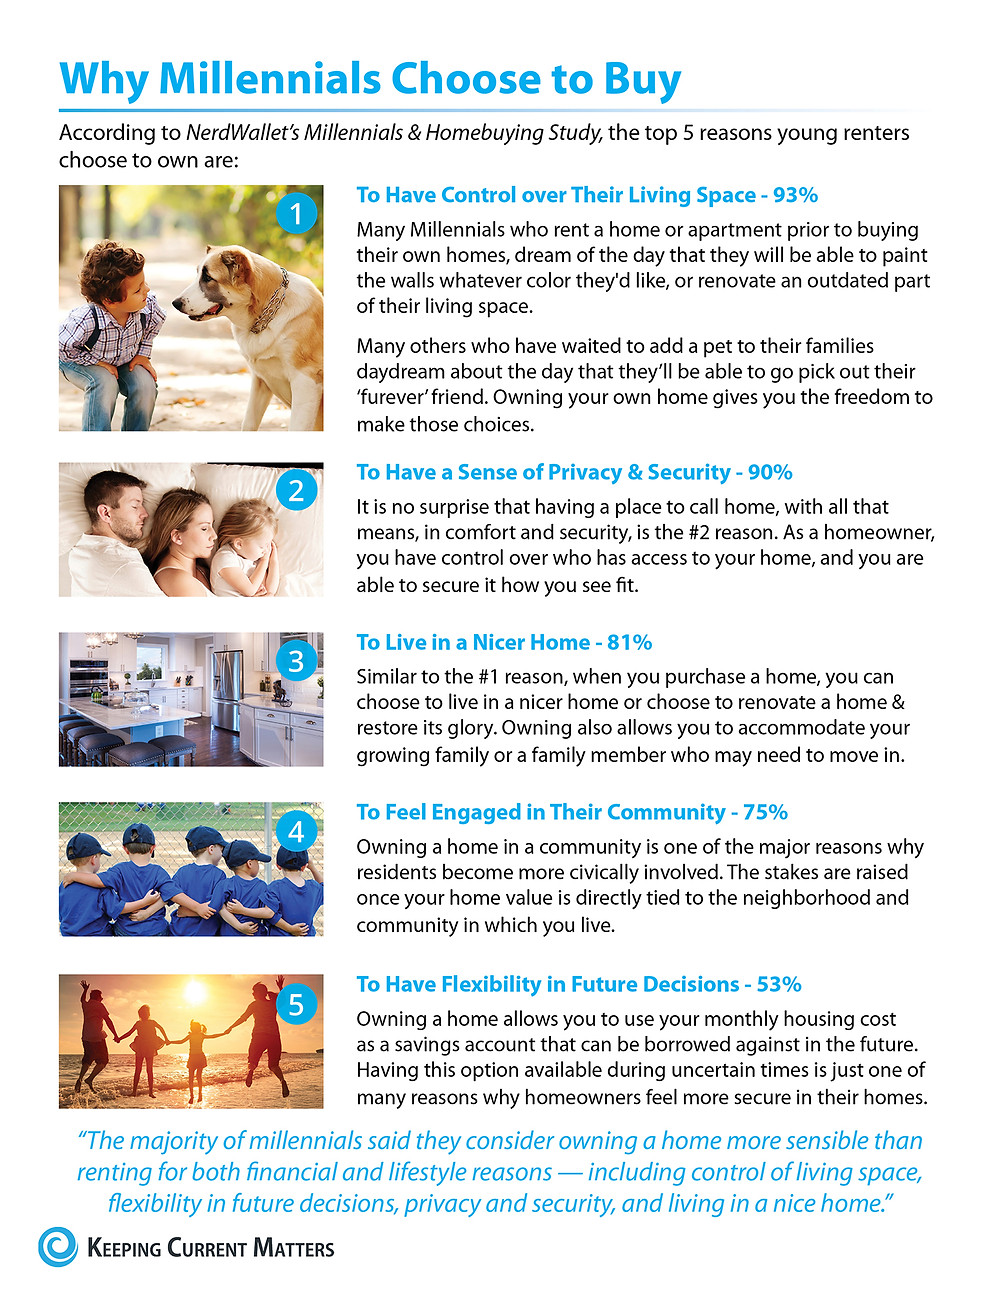 Top 5 Reasons Why Millennials Choose to Buy [INFOGRAPHIC] | Keeping Current Matters